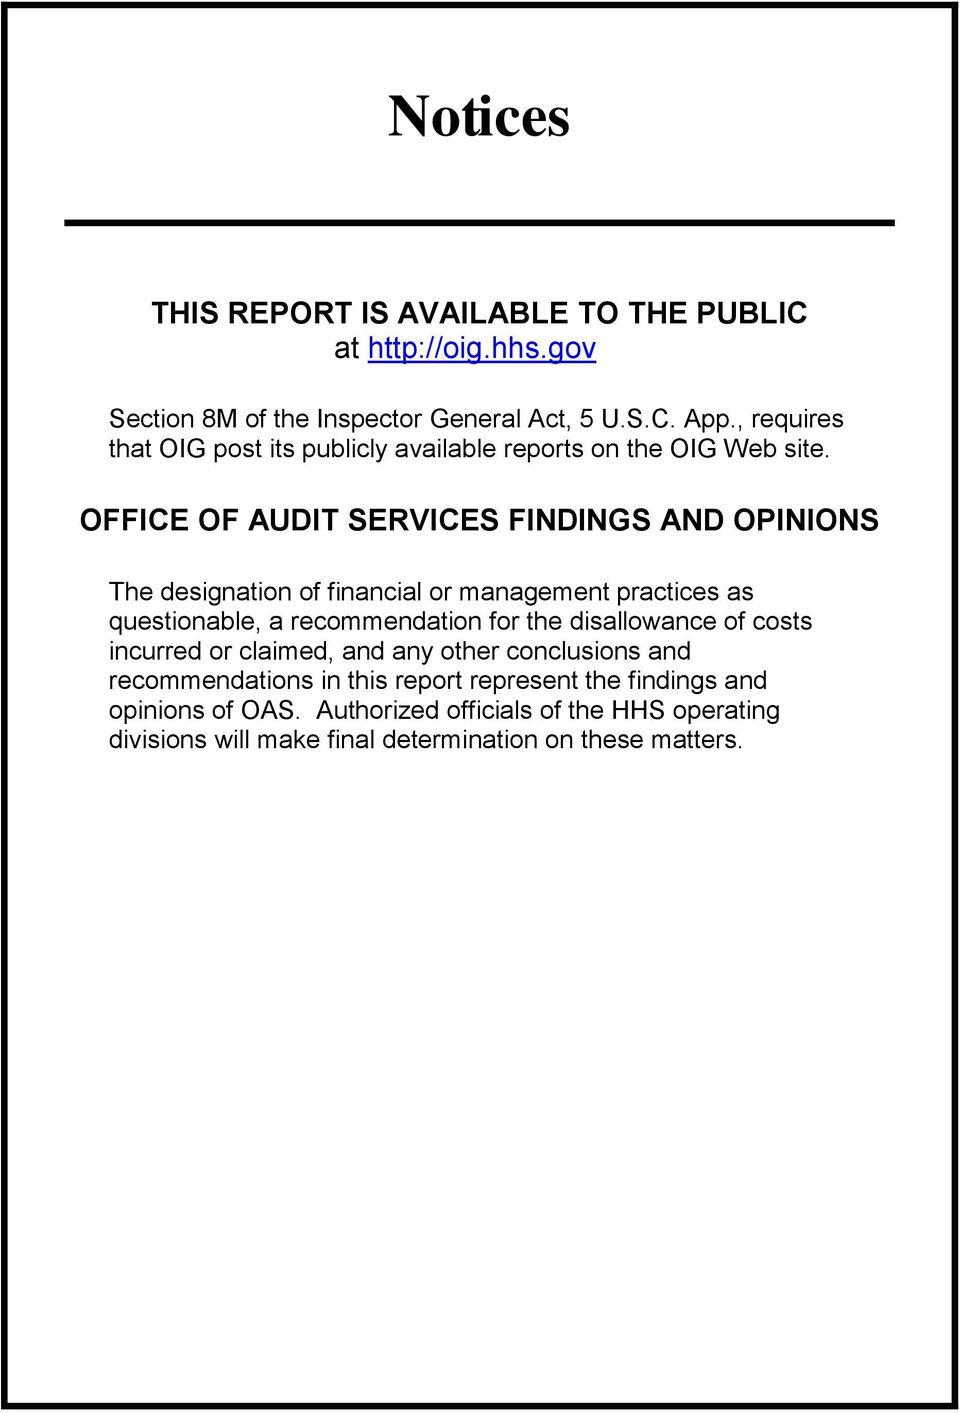 OFFICE OF AUDIT SERVICES FINDINGS AND OPINIONS The designation of financial or management practices as questionable, a recommendation for the